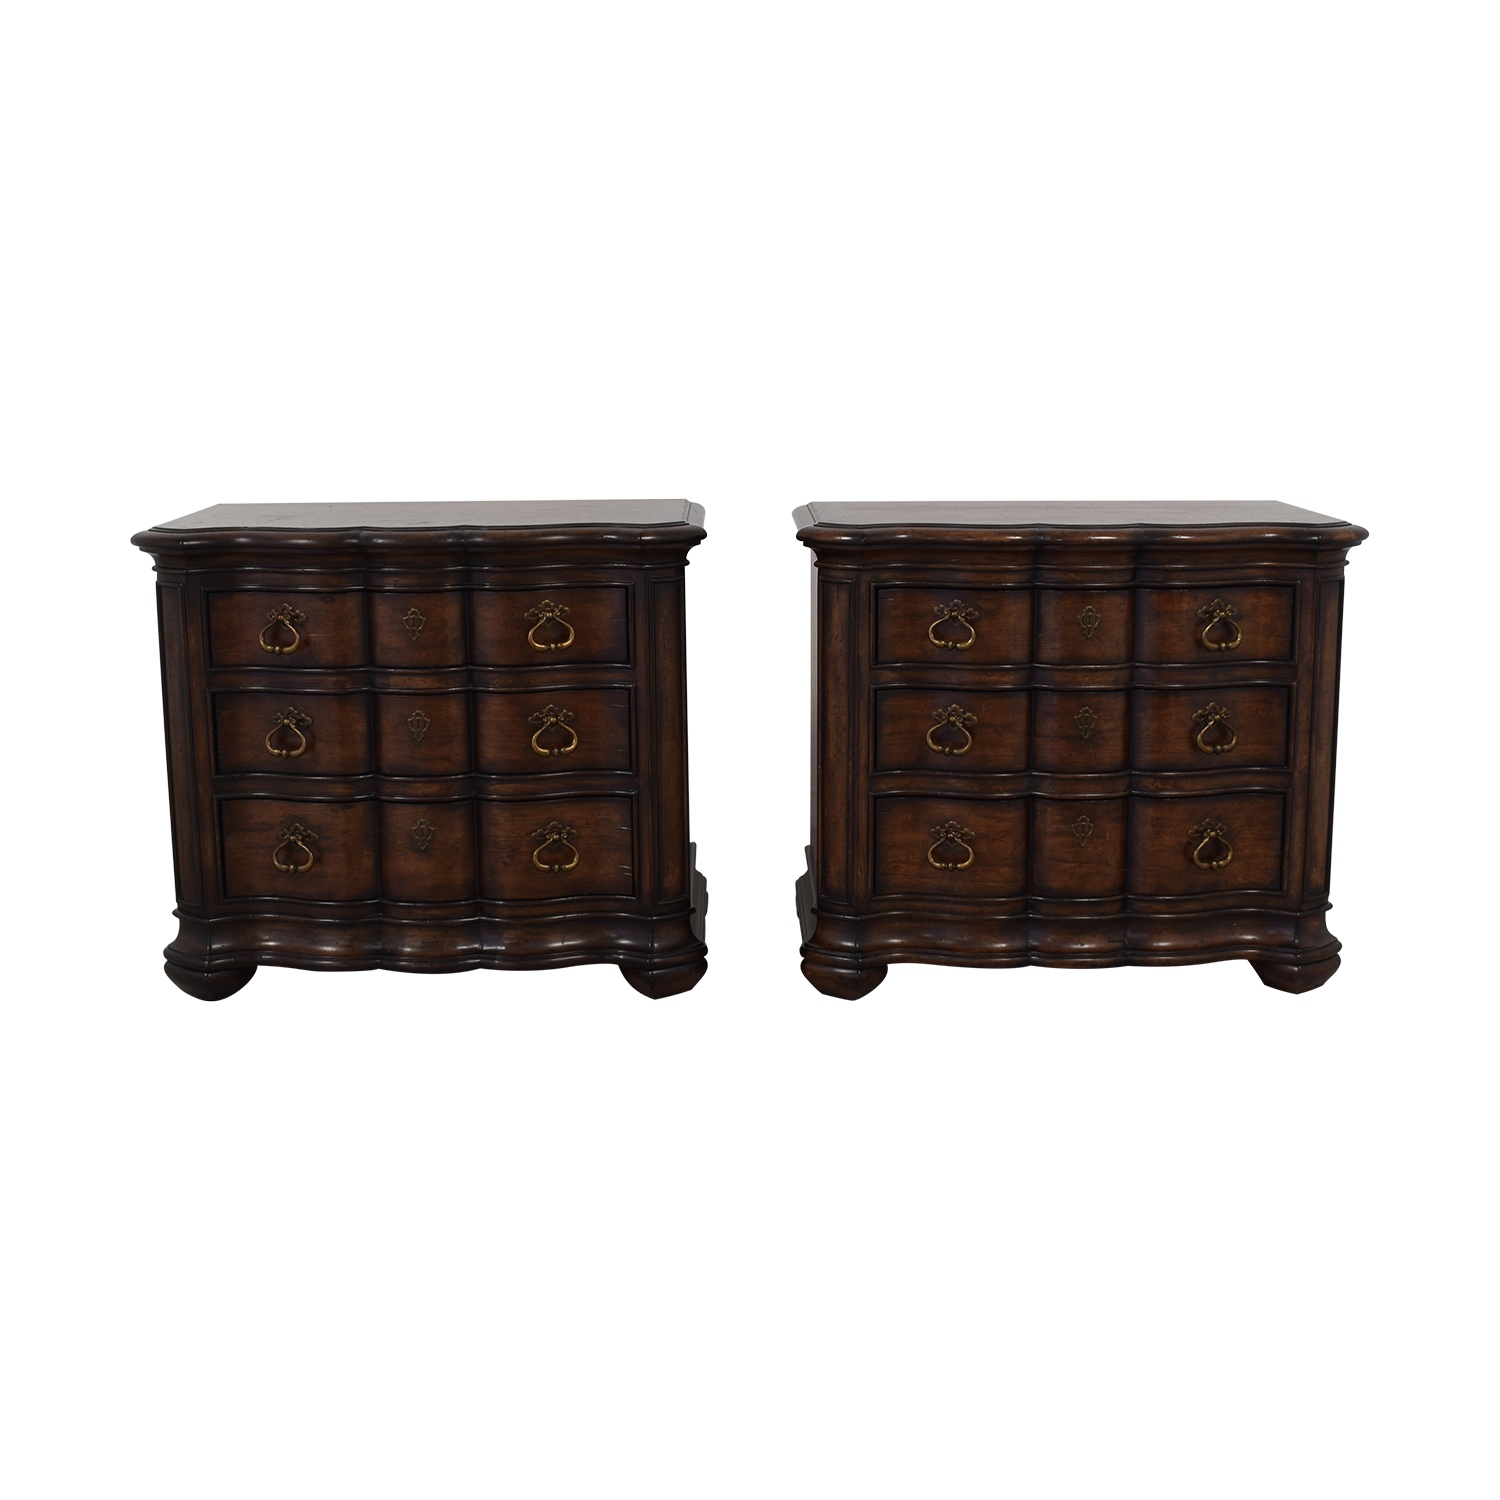 Thomasville Thomasville Hills of Tuscany Lucca Nightstands nyc